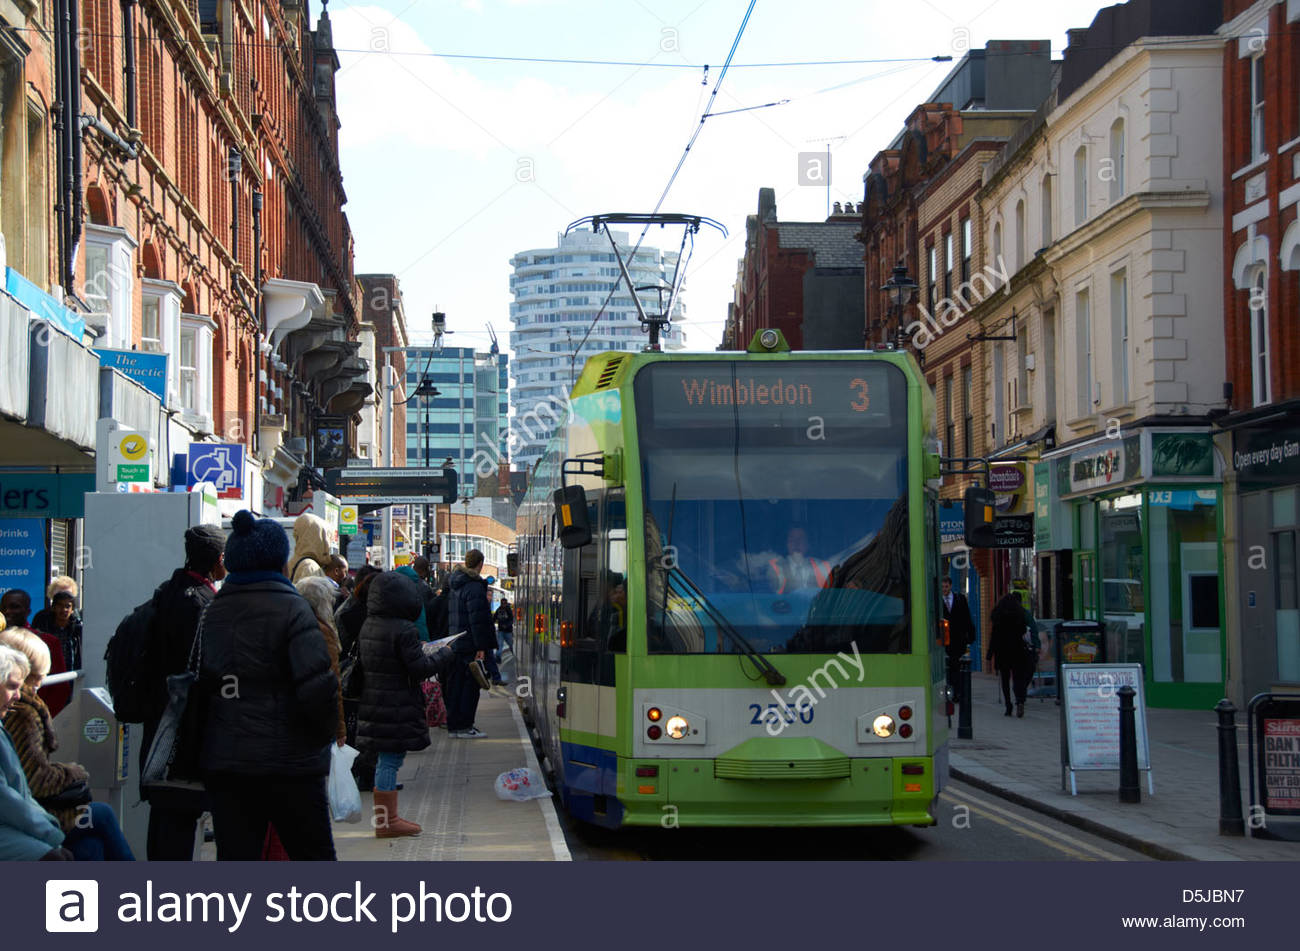 Wimbledon tram on George Street in Croydon. - Stock Image